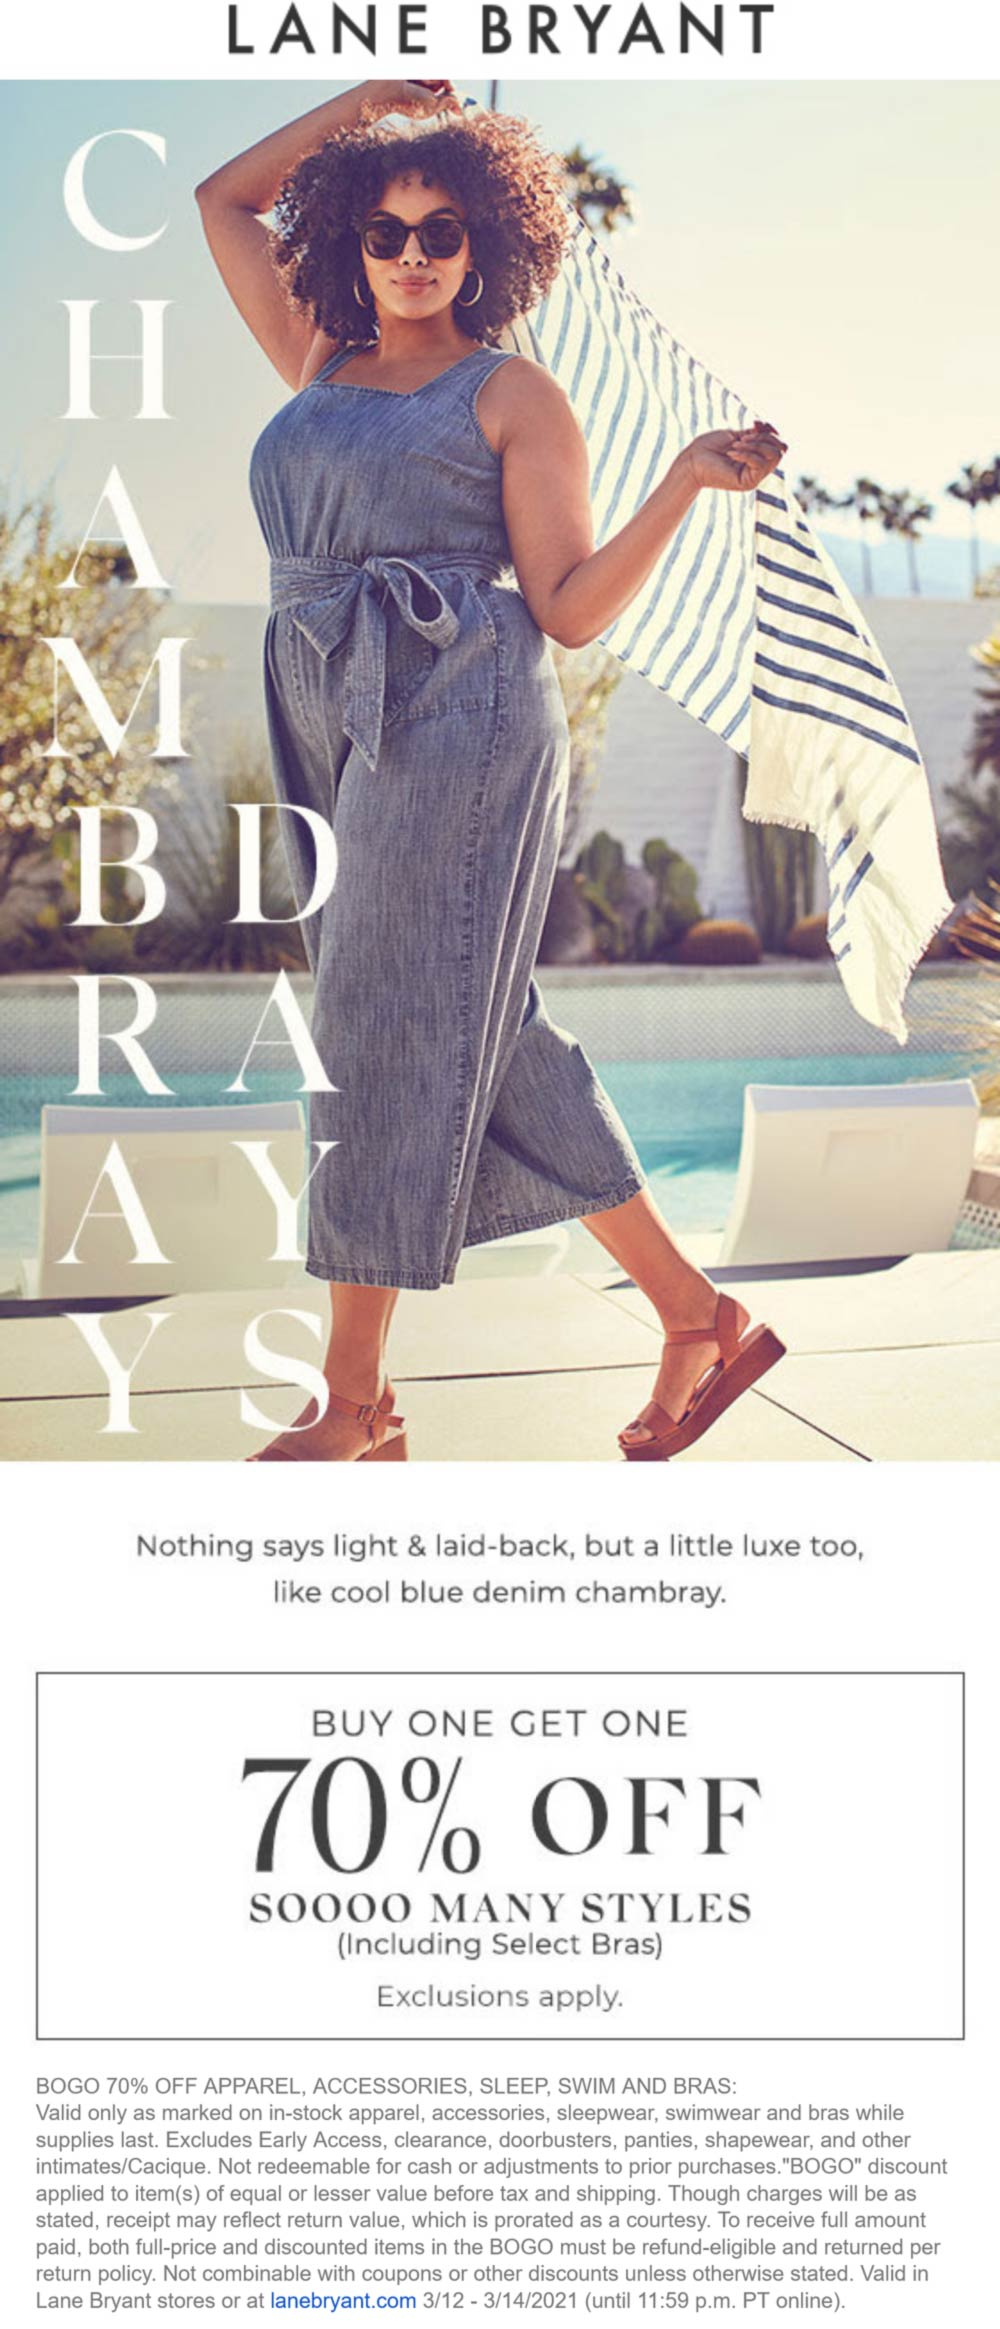 Lane Bryant stores Coupon  Second item 70% off at Lane Bryant, ditto online #lanebryant